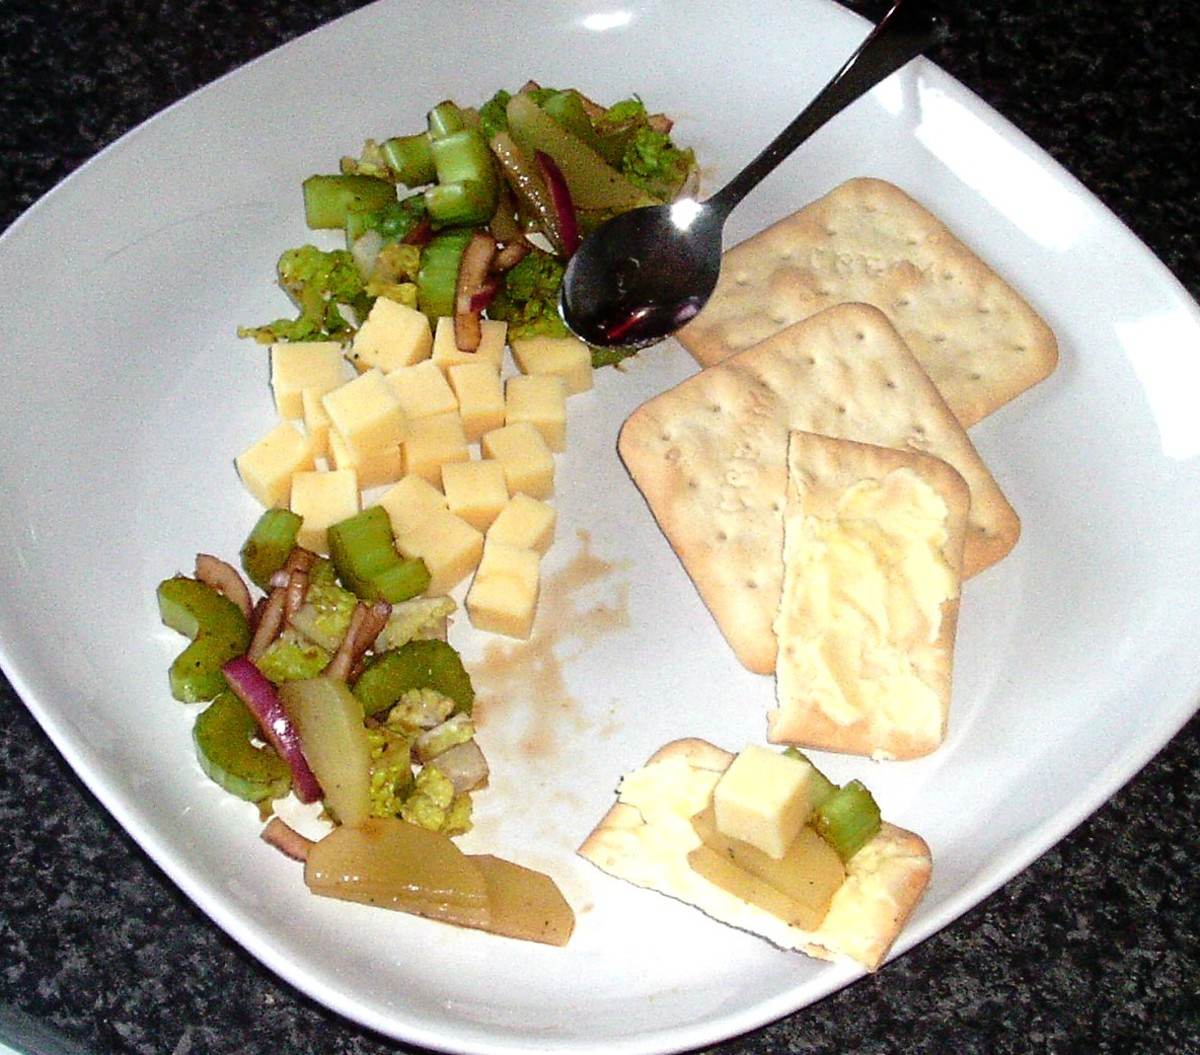 Enjoying celtuce and celery salad with cheese and crakcers